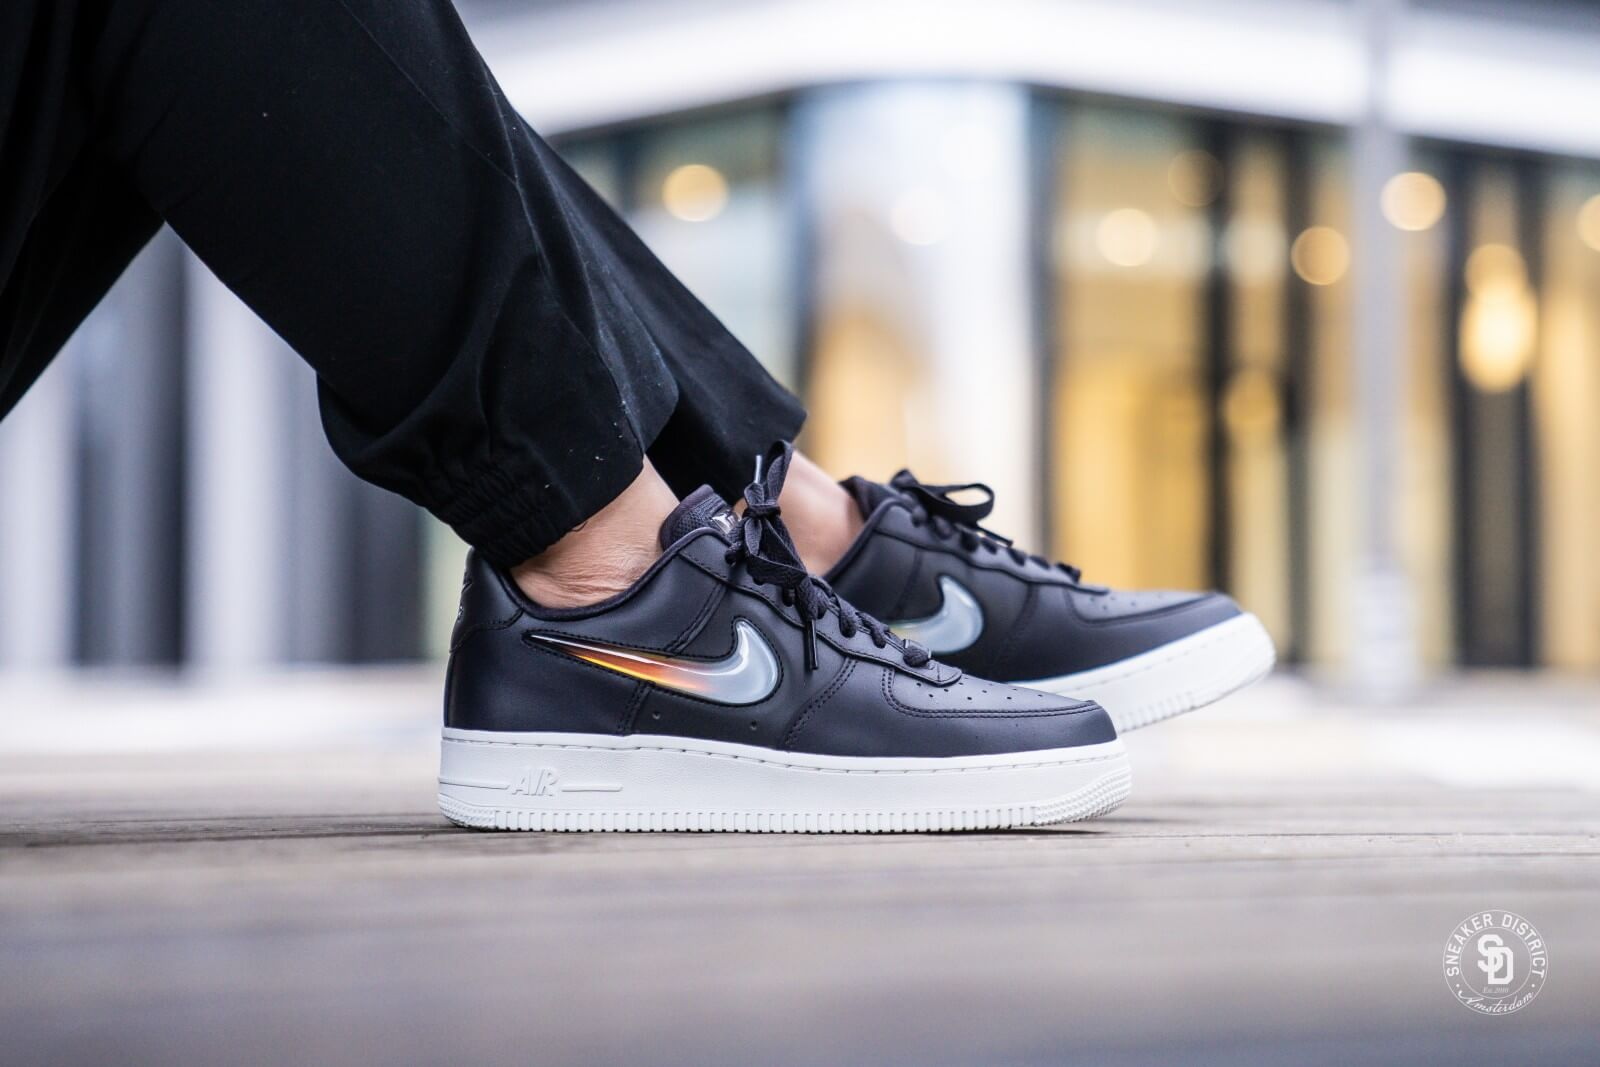 WMNS Nike Air Force 1 '07 SE Premium JP Oil GreyBright